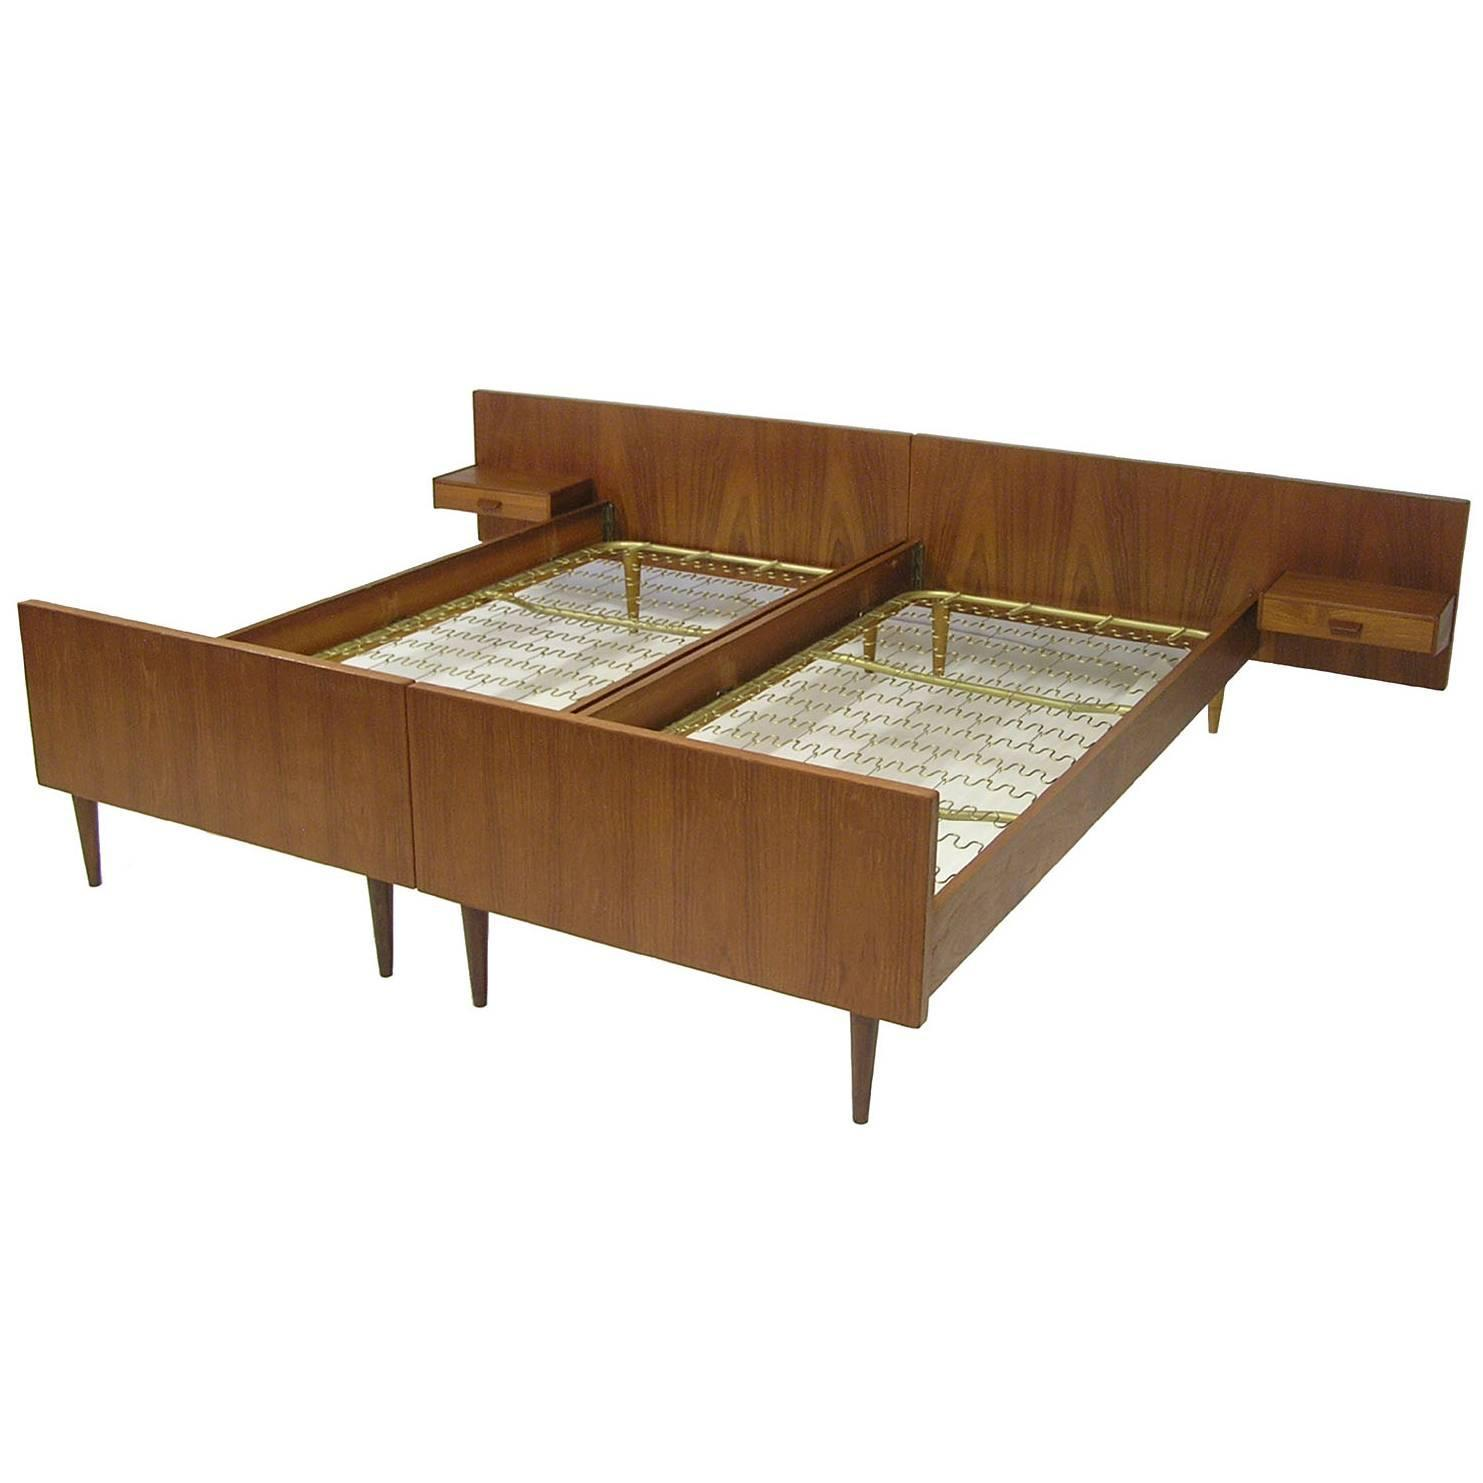 1960s danish teak single beds with night tables pair at 1stdibs - Teak Bed Frame